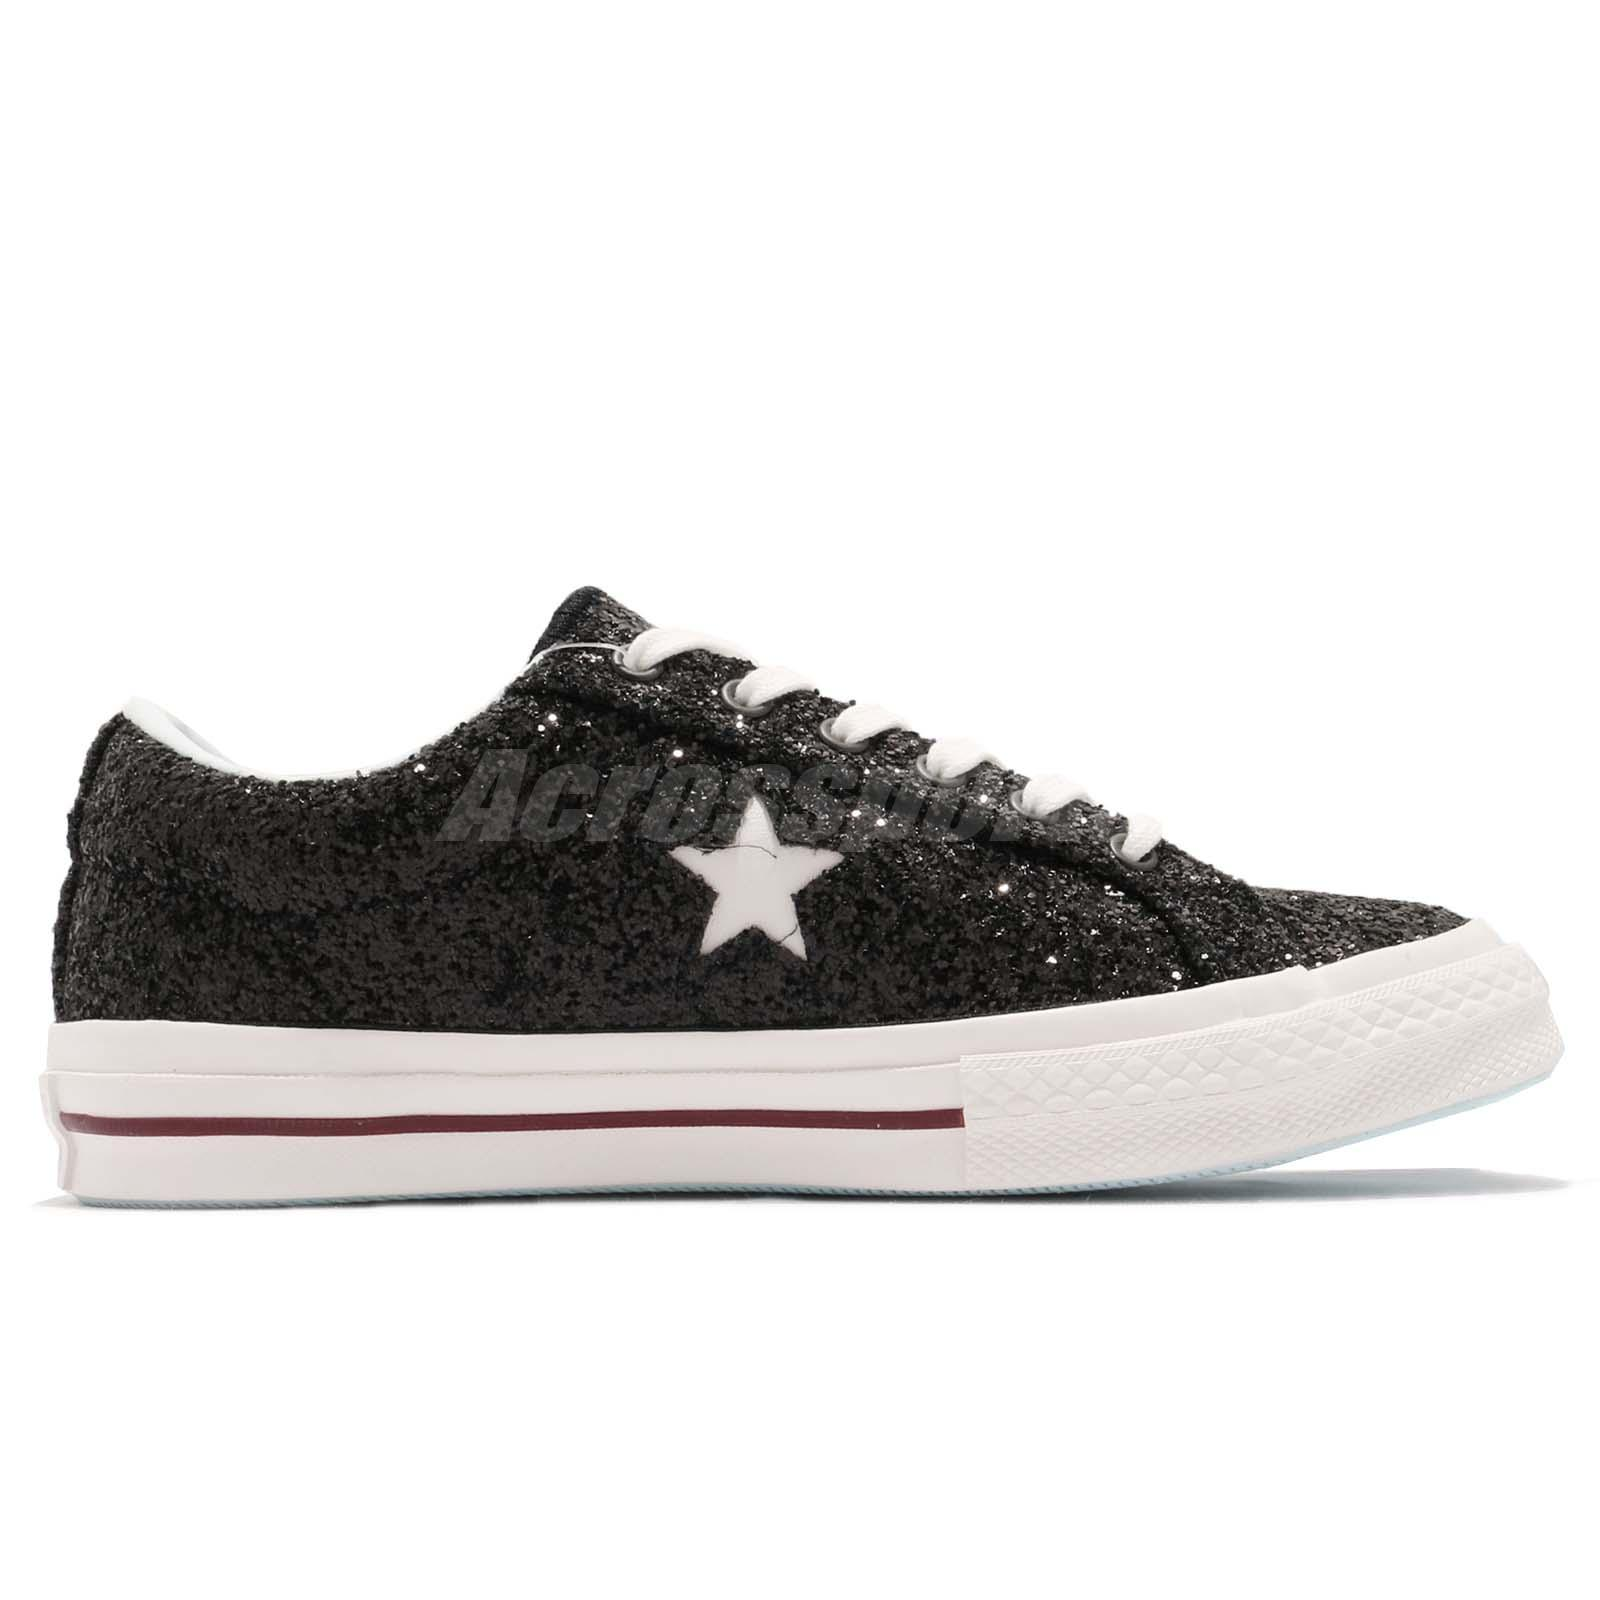 d346ae3a013f Converse x Chiara Ferragni One Star OX Black Blue White Women Shoes ...